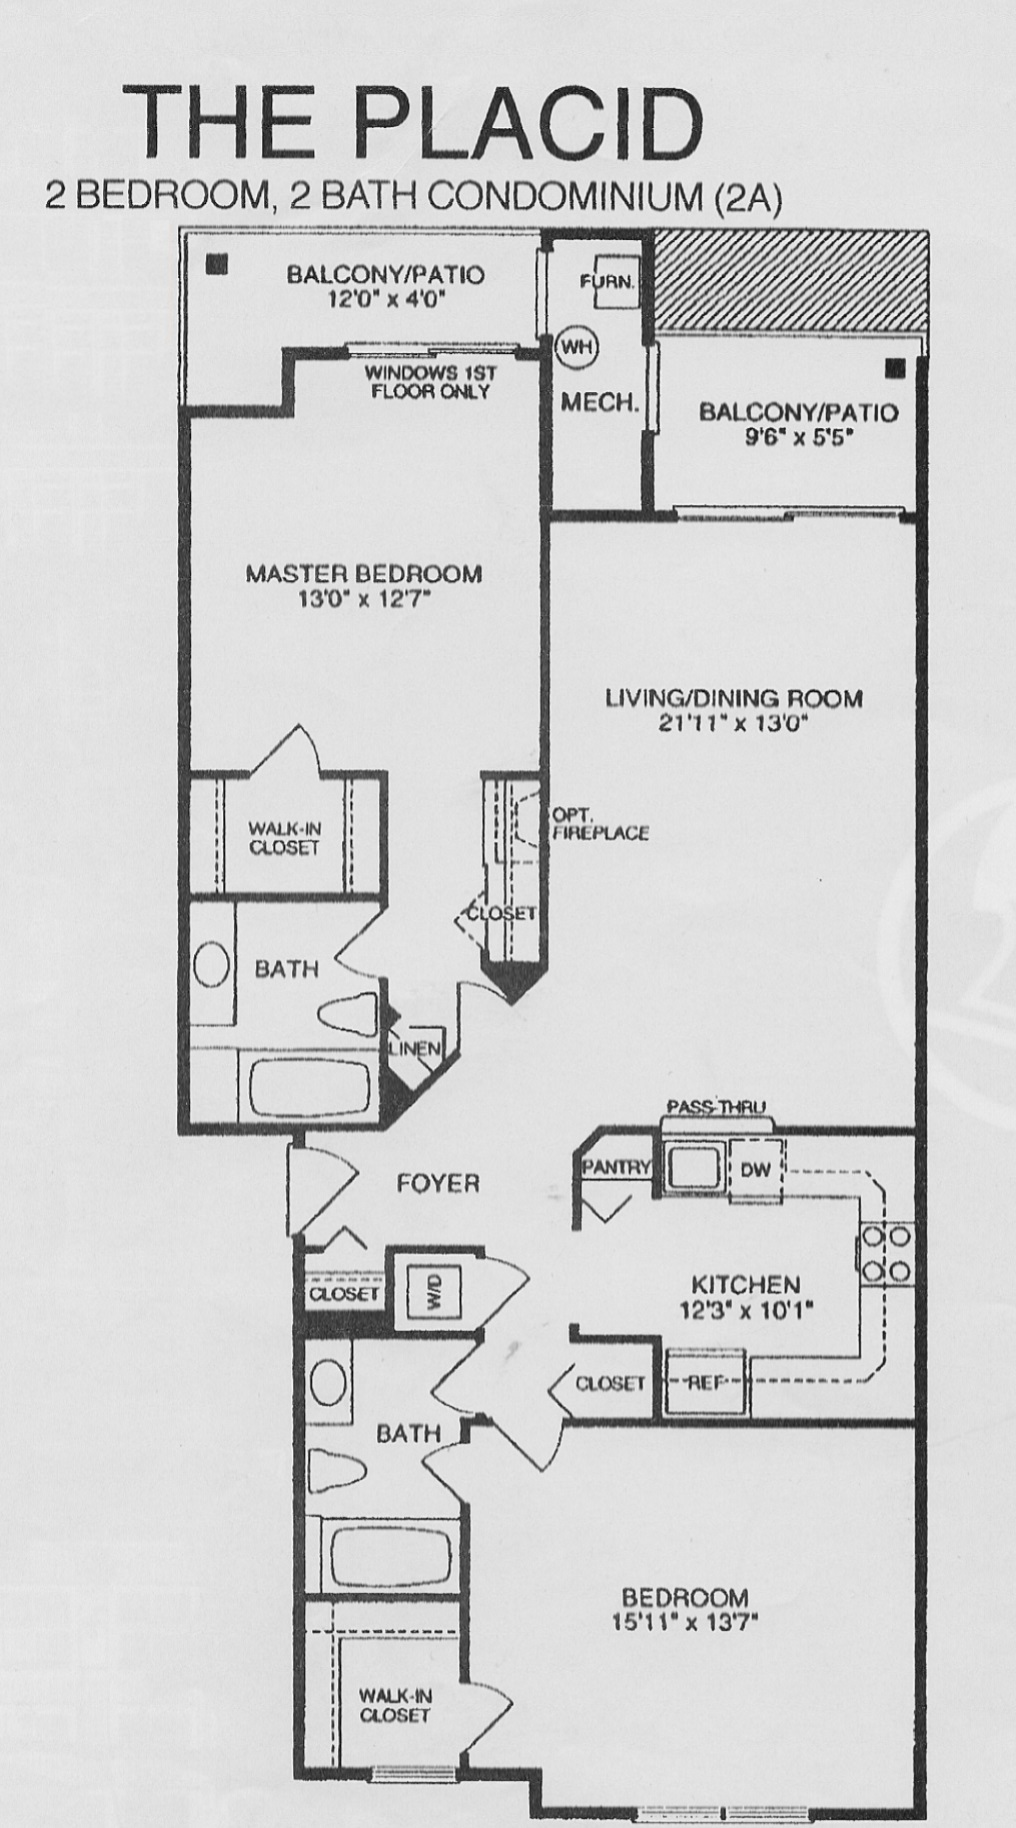 Lakeshore condominium floor plans lakeshore condominium for Condo floor plan